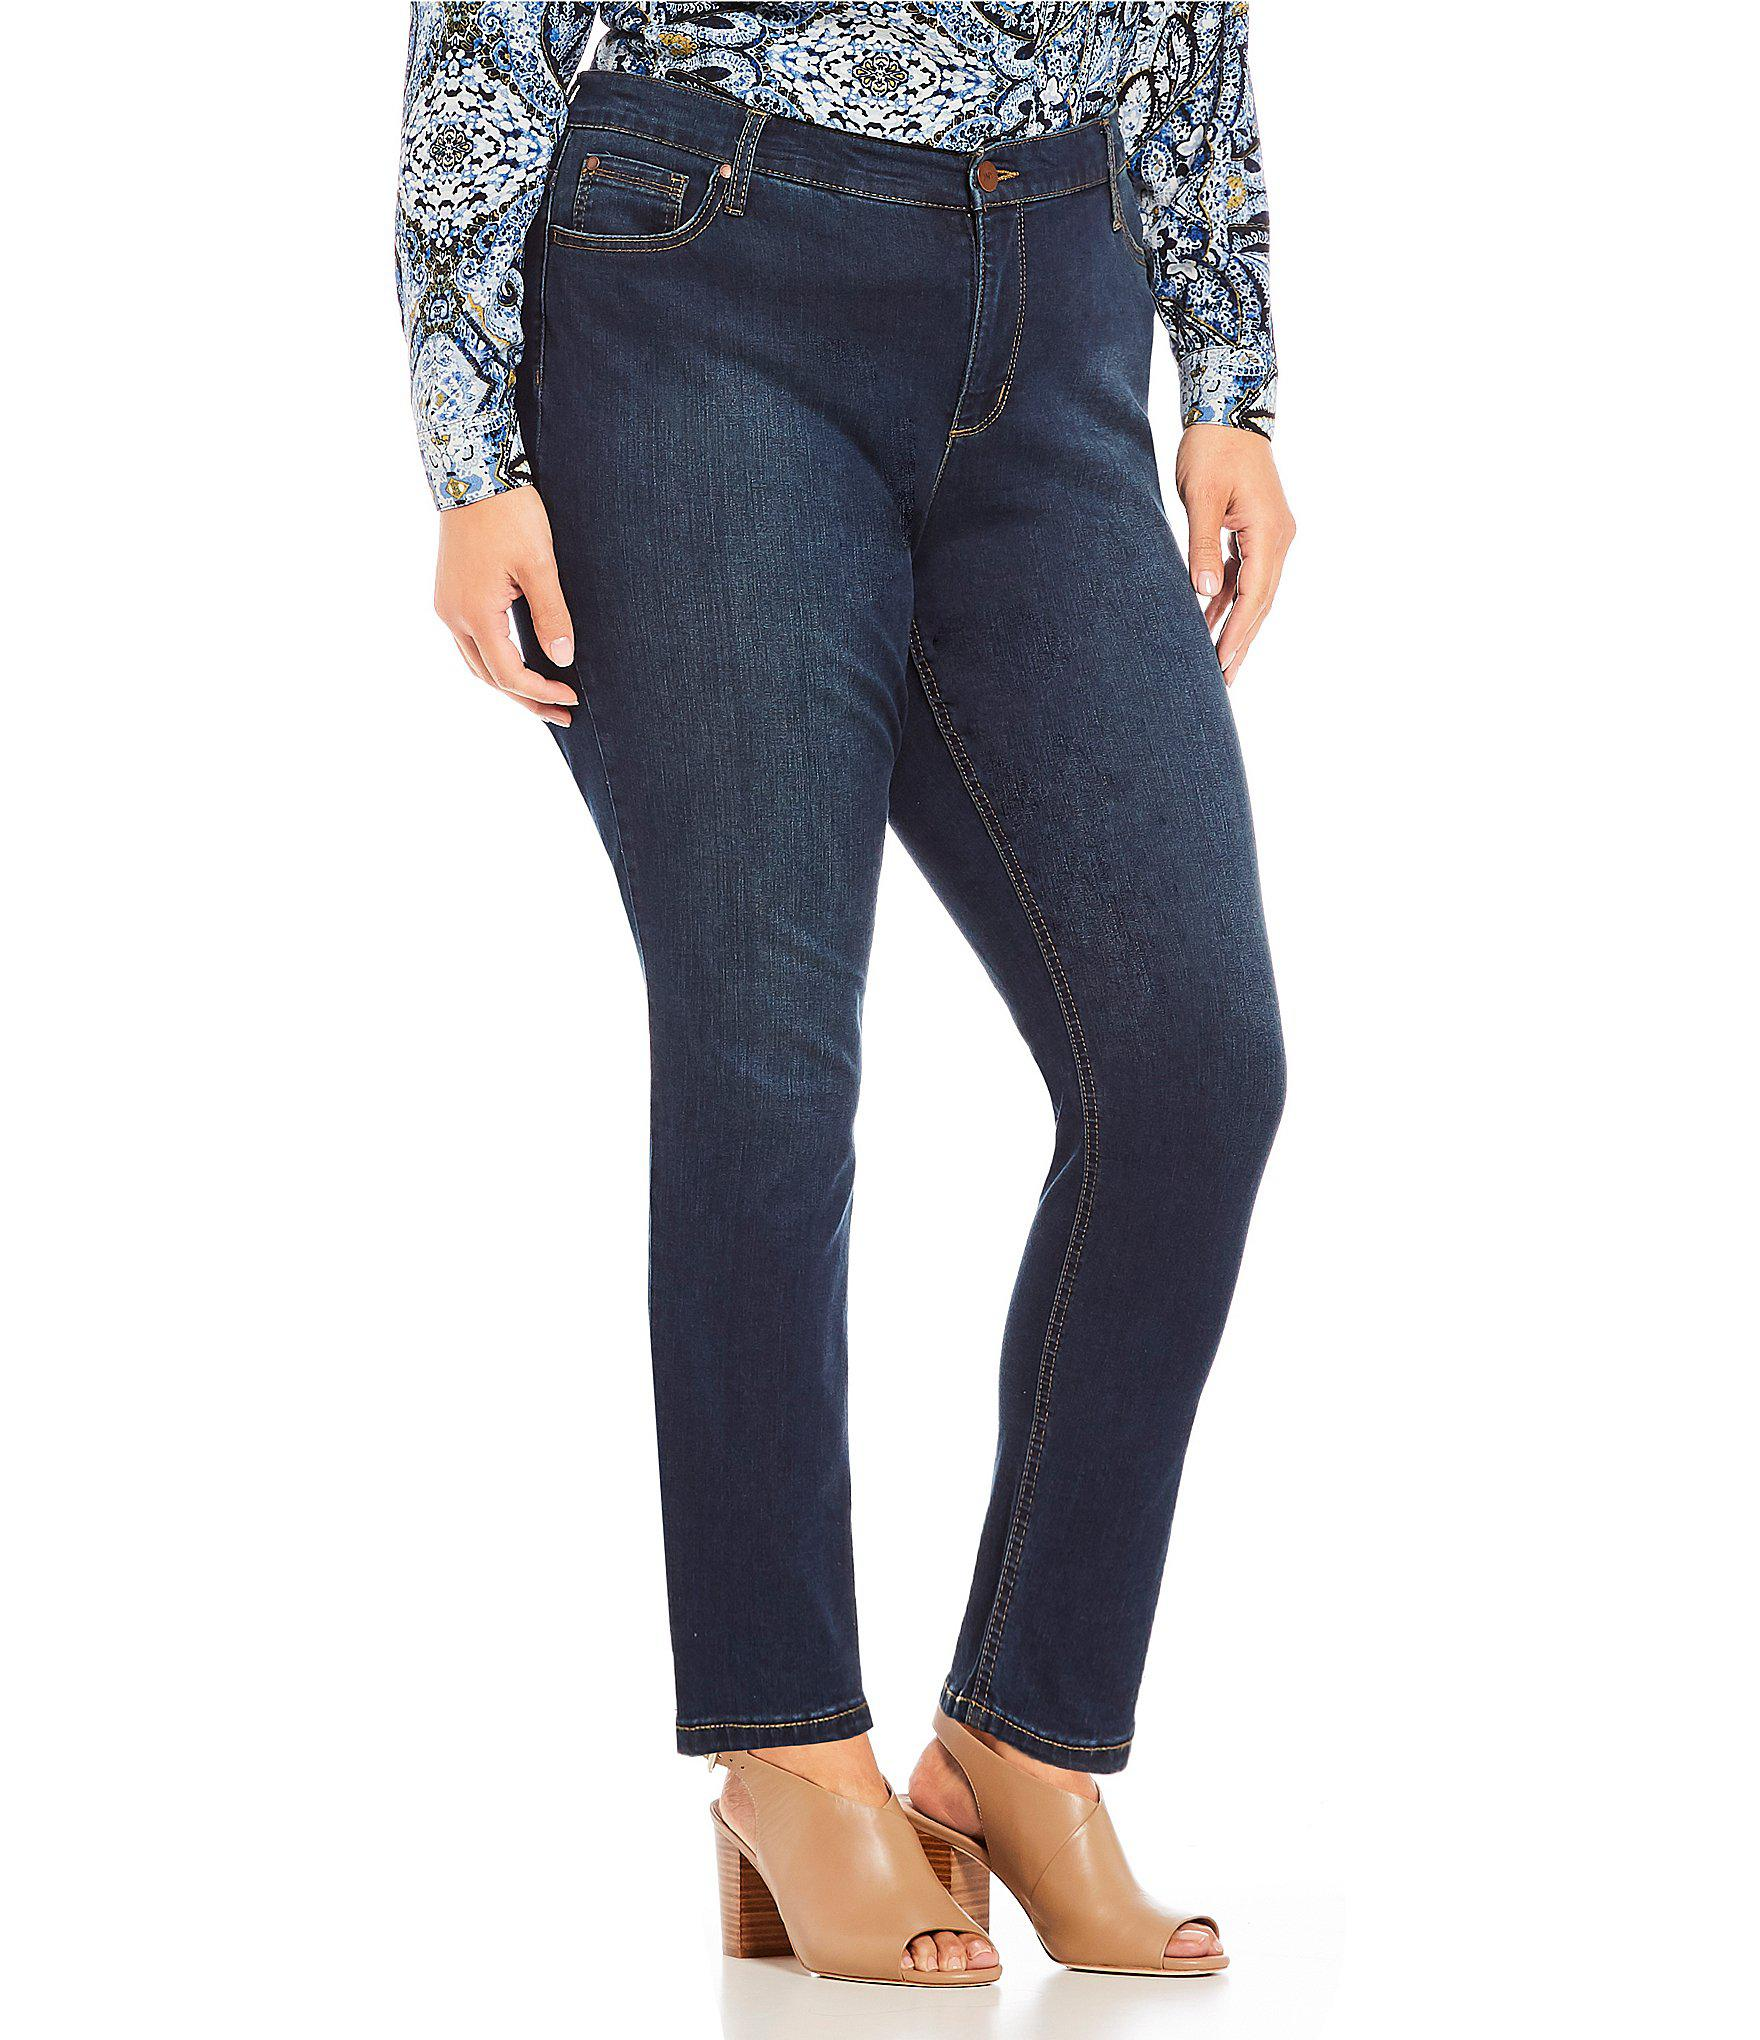 73e7cc28a9ebe Lyst - Jones New York Plus Size Lexington Curvy Skinny Jean in Blue